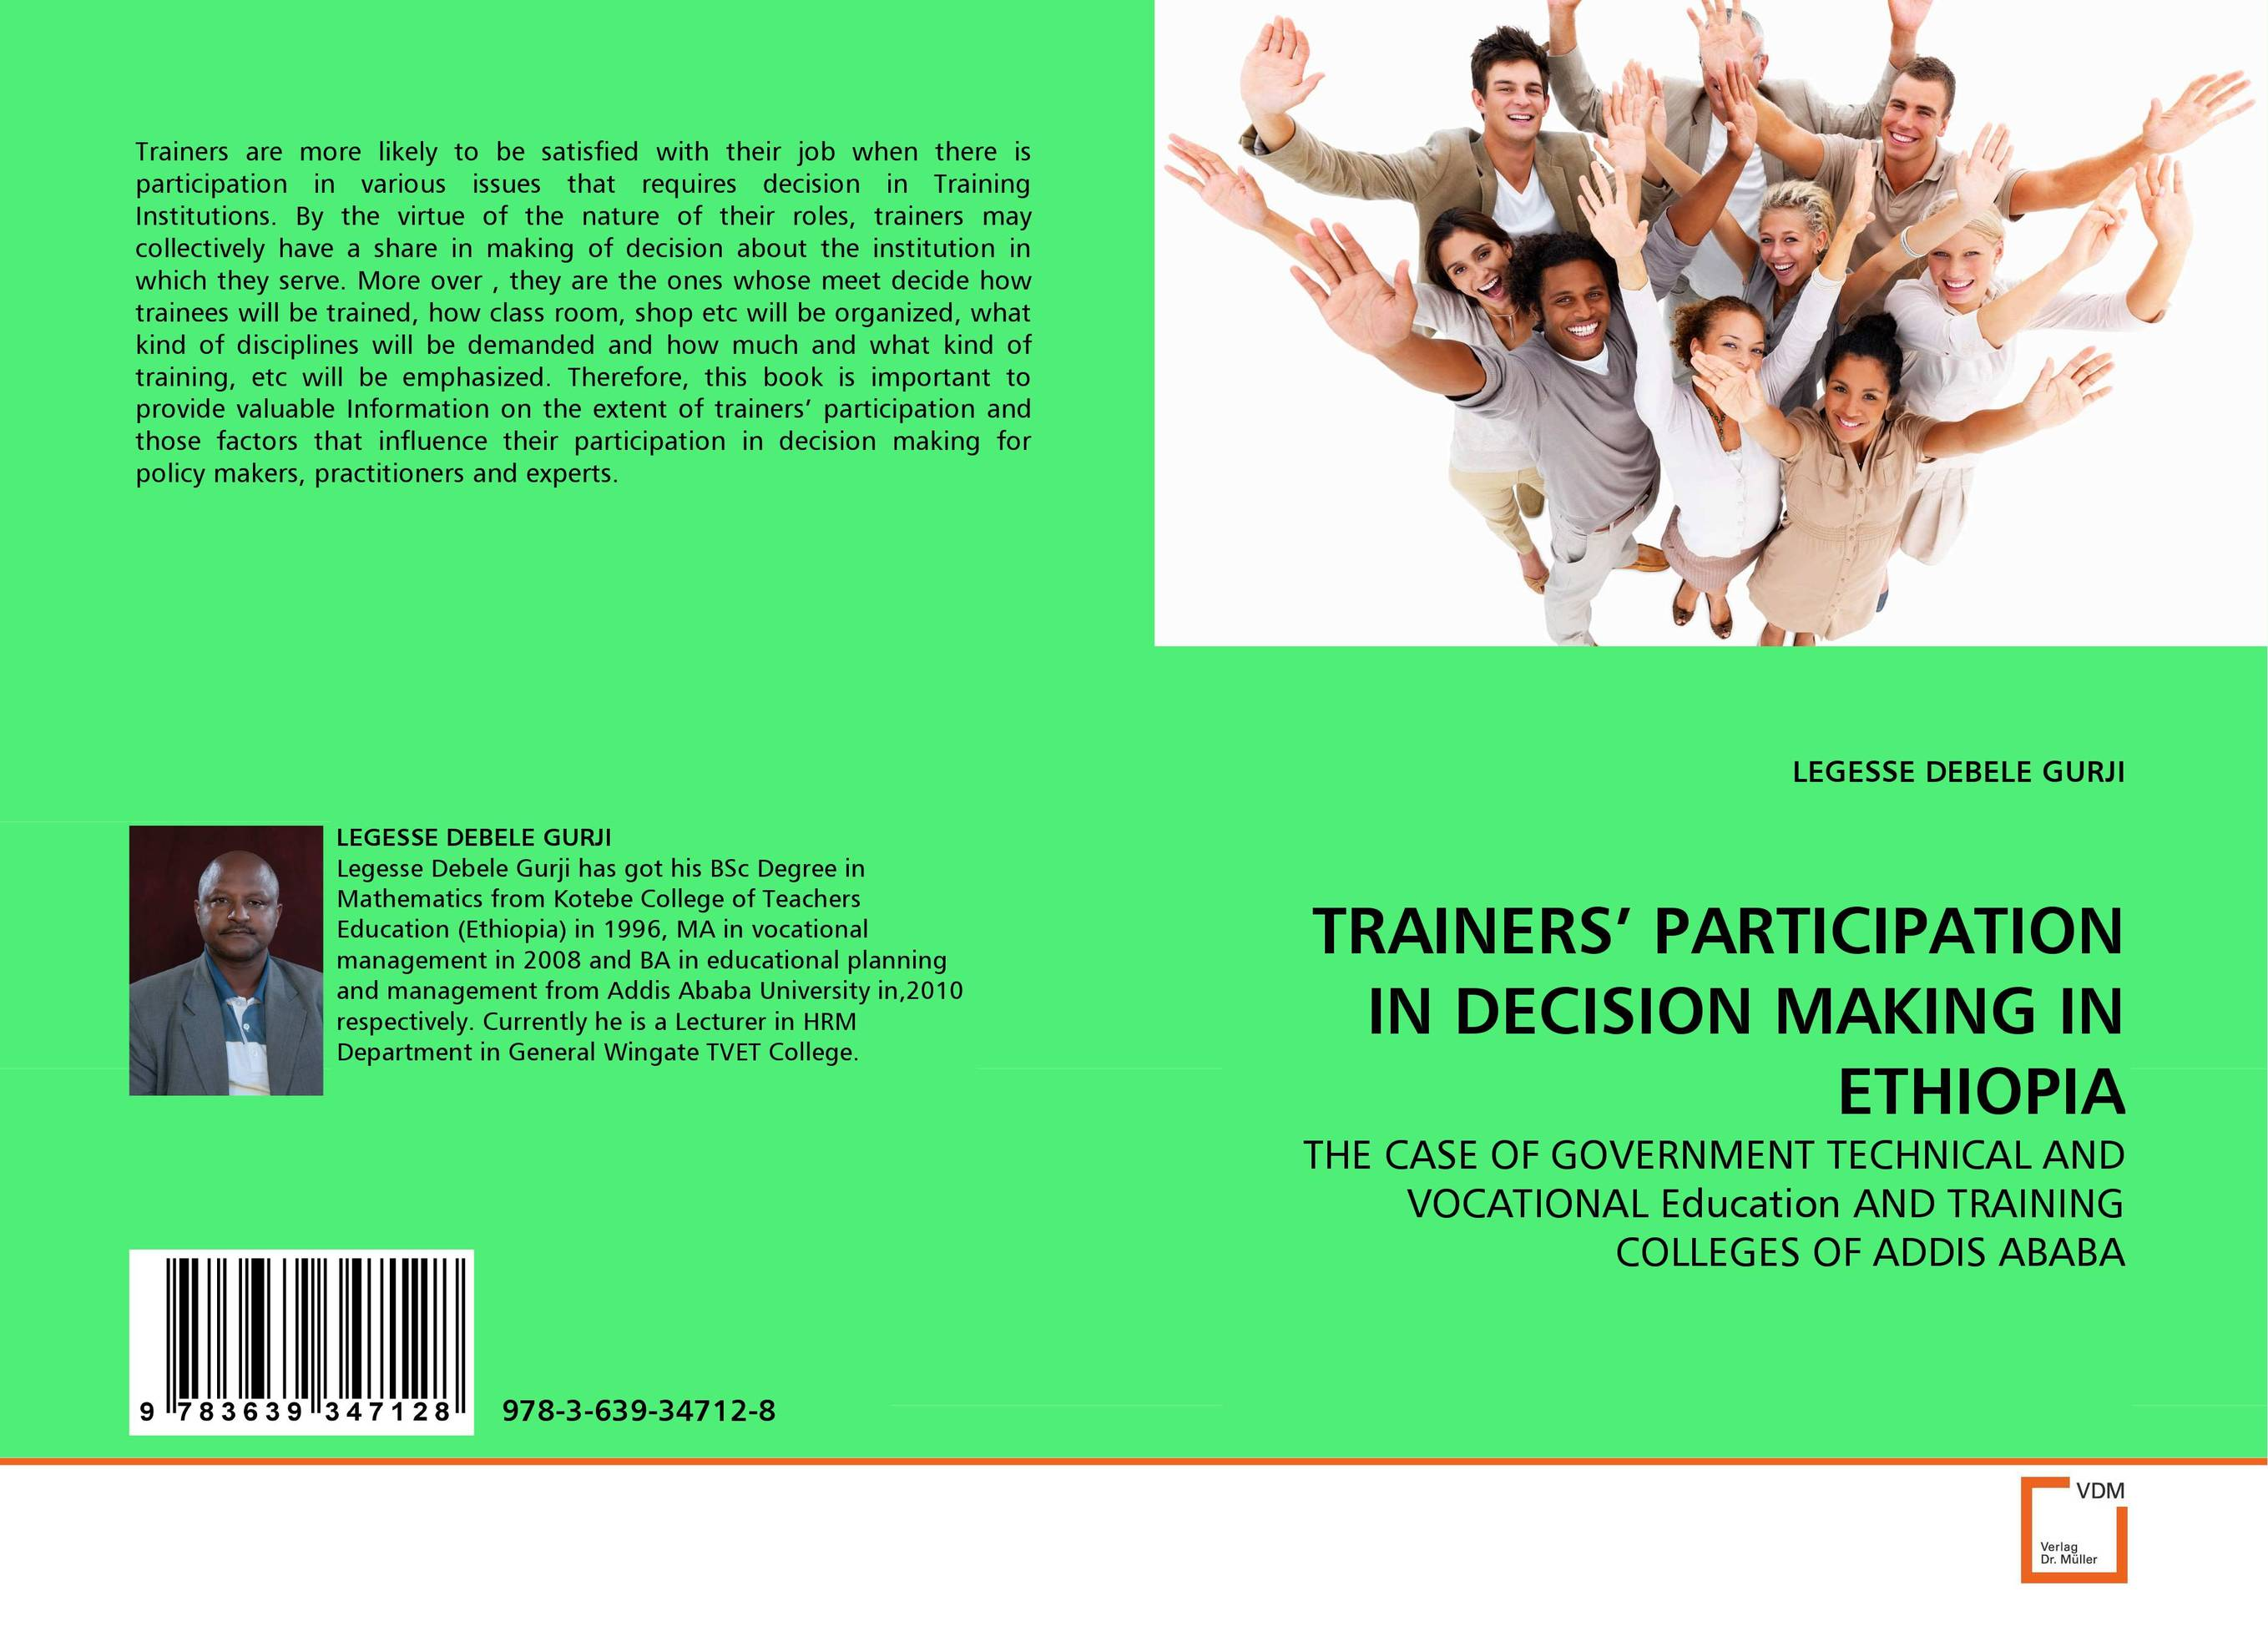 TRAINERS'' PARTICIPATION IN DECISION MAKING IN ETHIOPIA nicholas michael the little black book of decision making